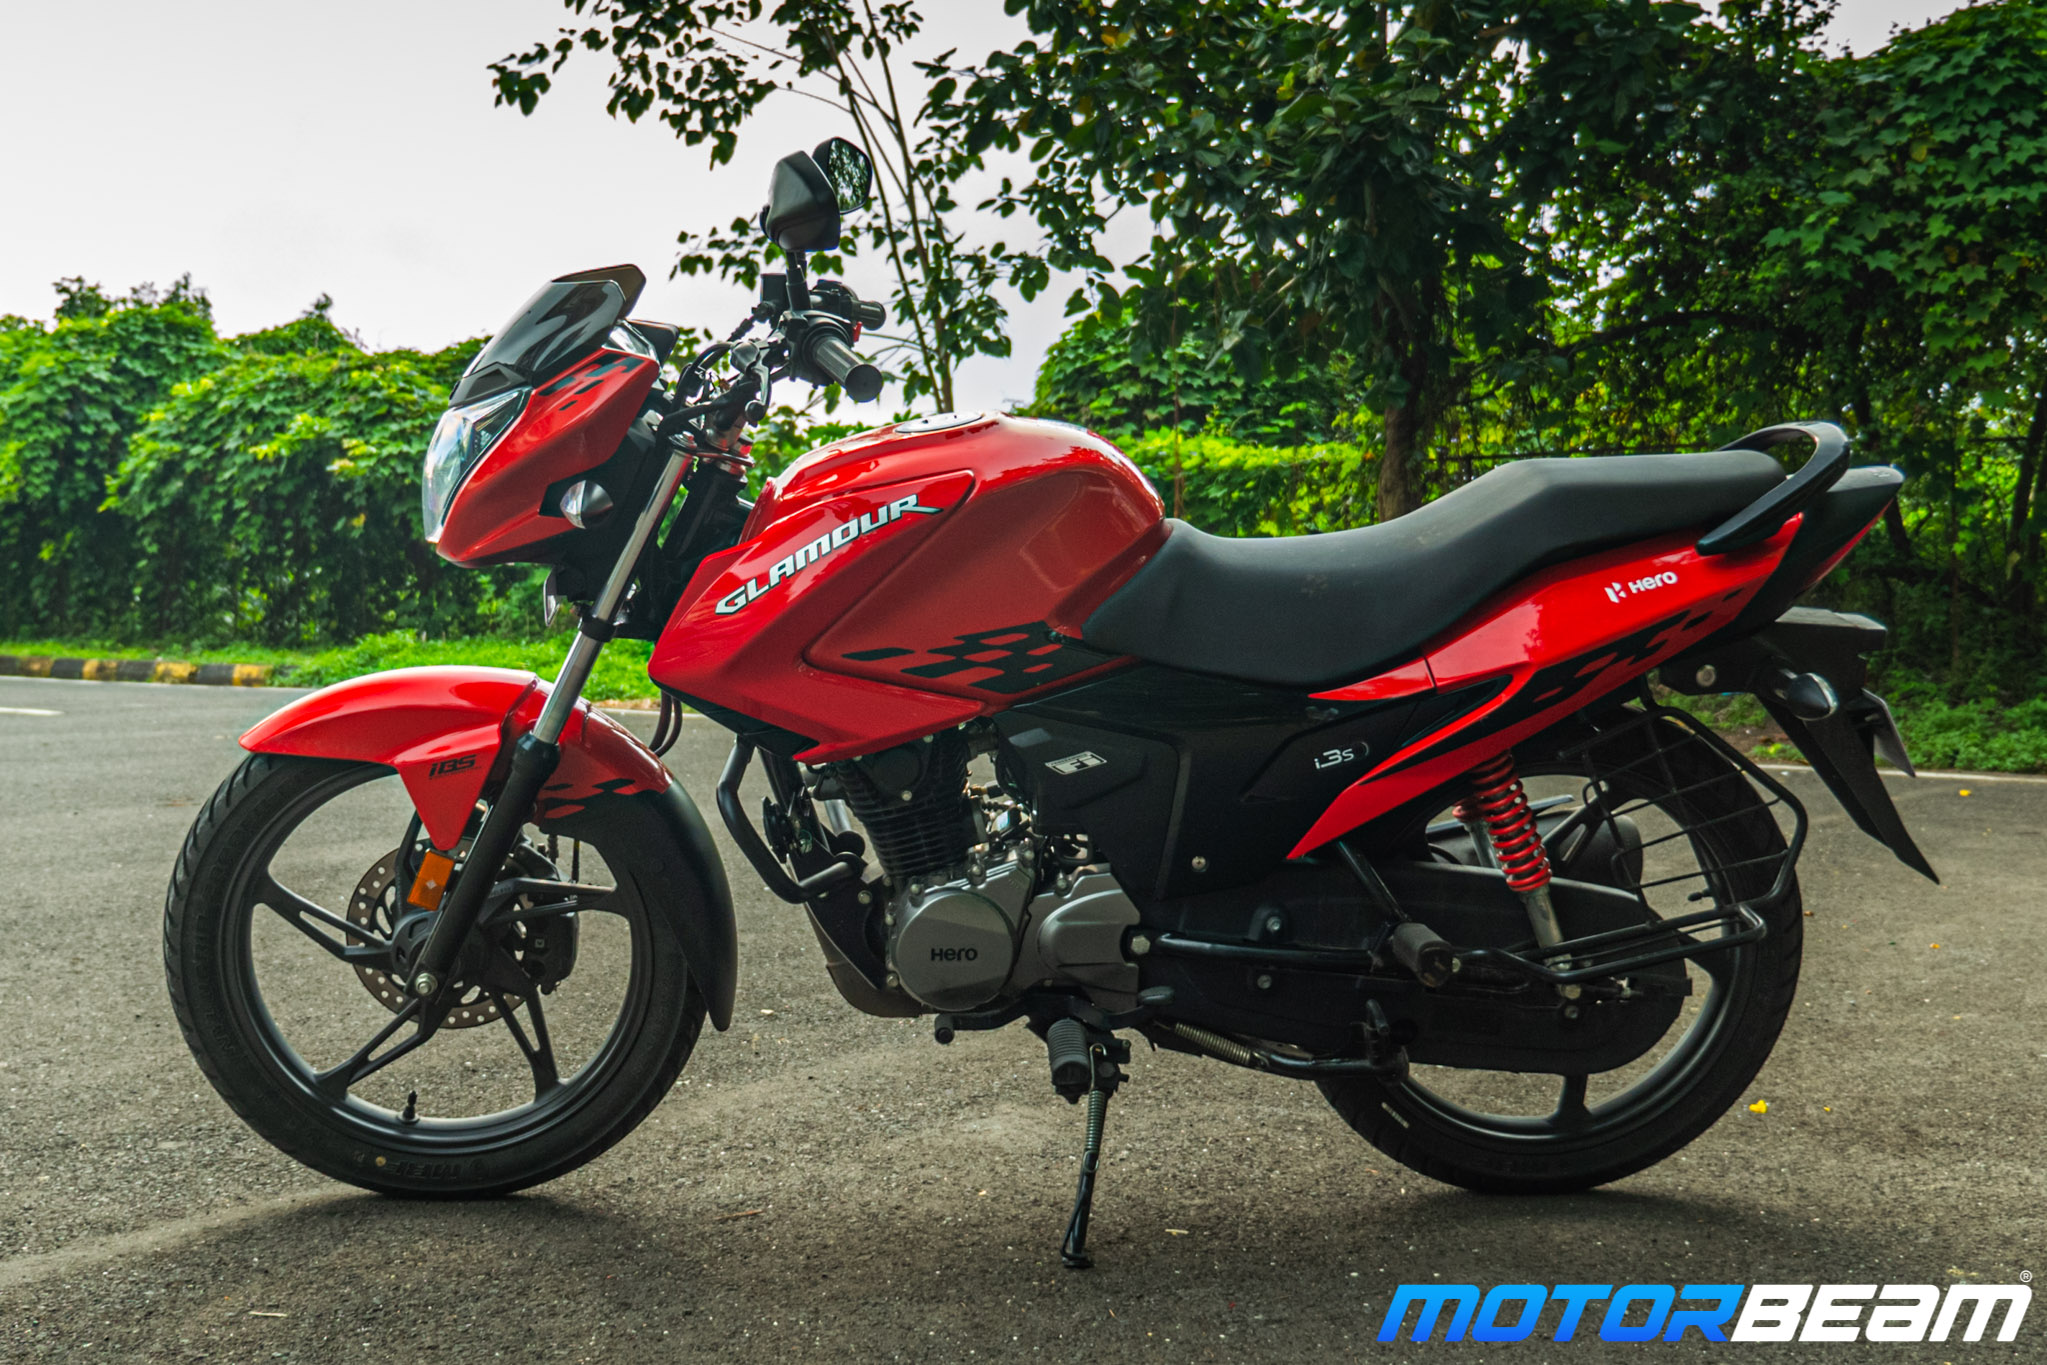 2020 Hero Glamour 125 Review 9